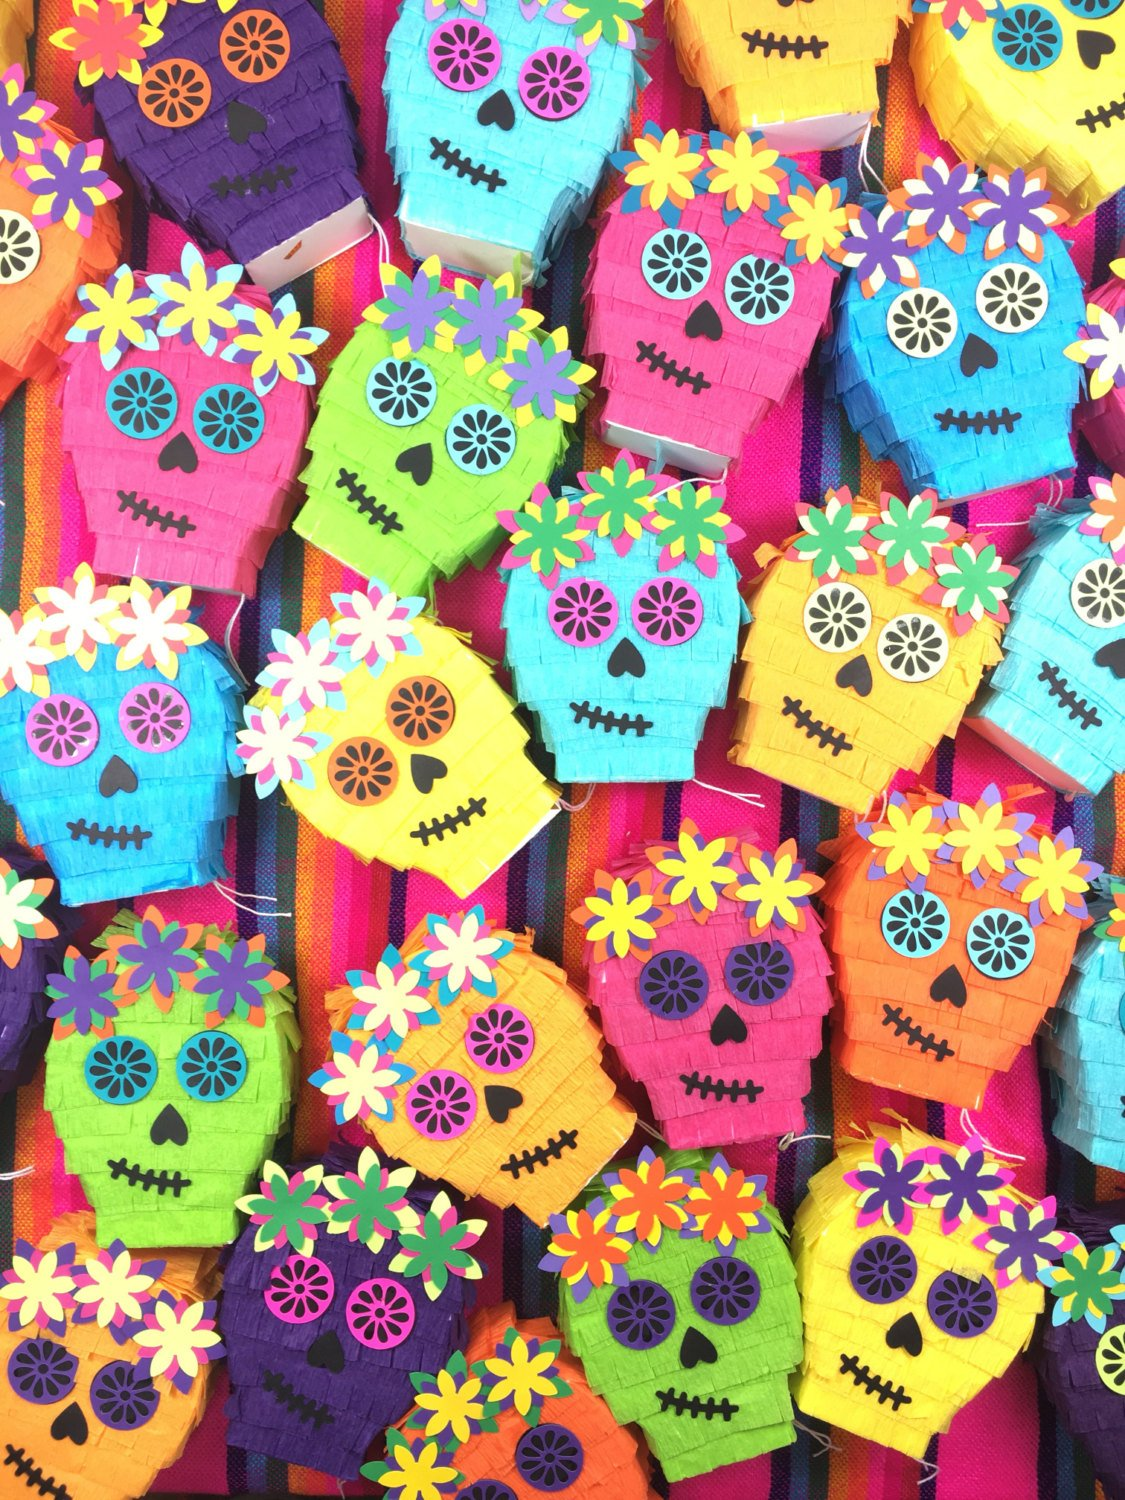 Mini Pinata Sugar Skull Day of the Dead Decorations